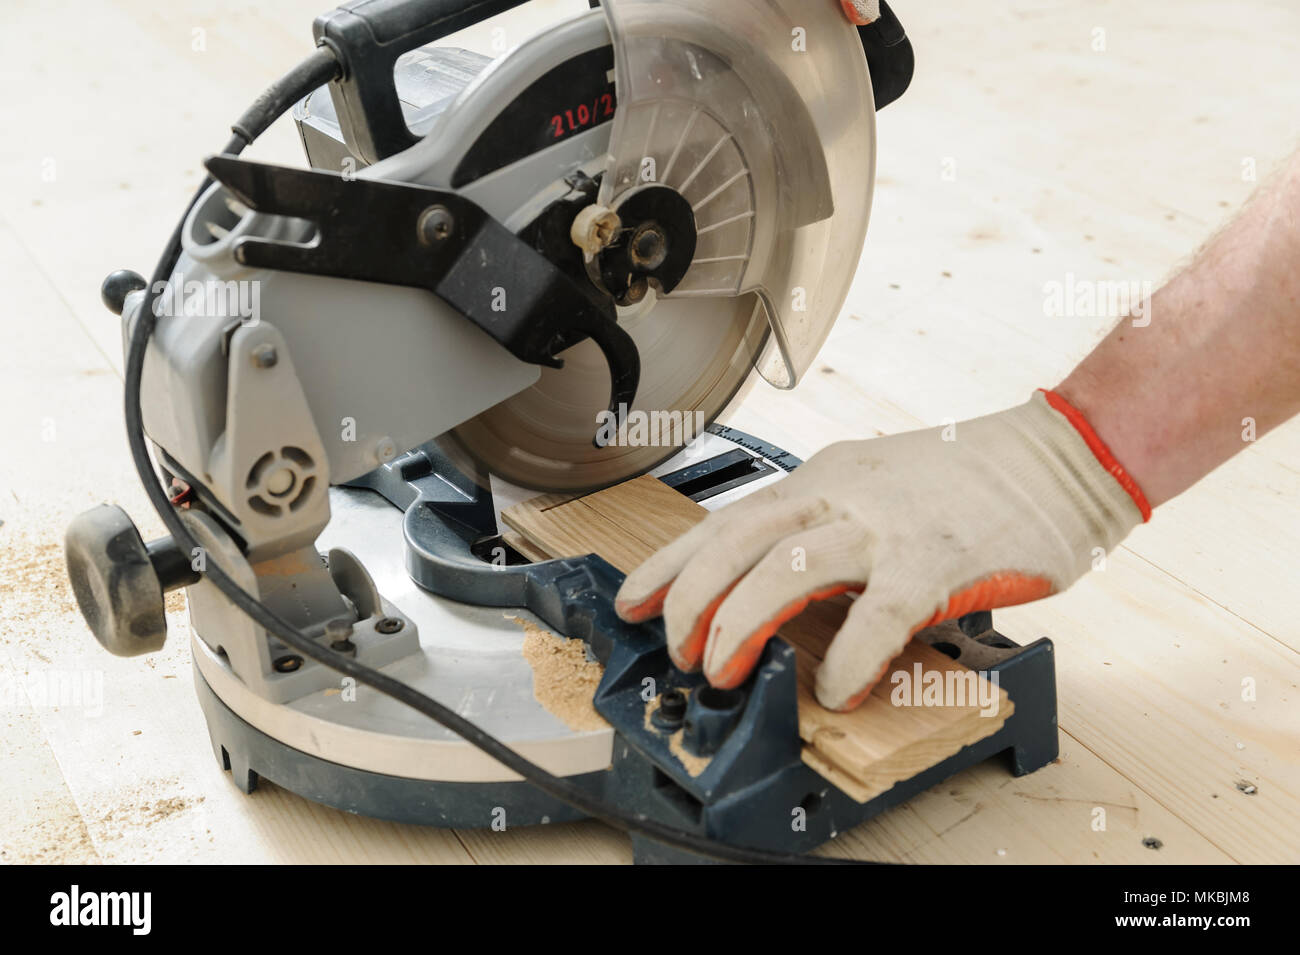 Worker cuts wooden floorboards using a circular saw. Stock Photo